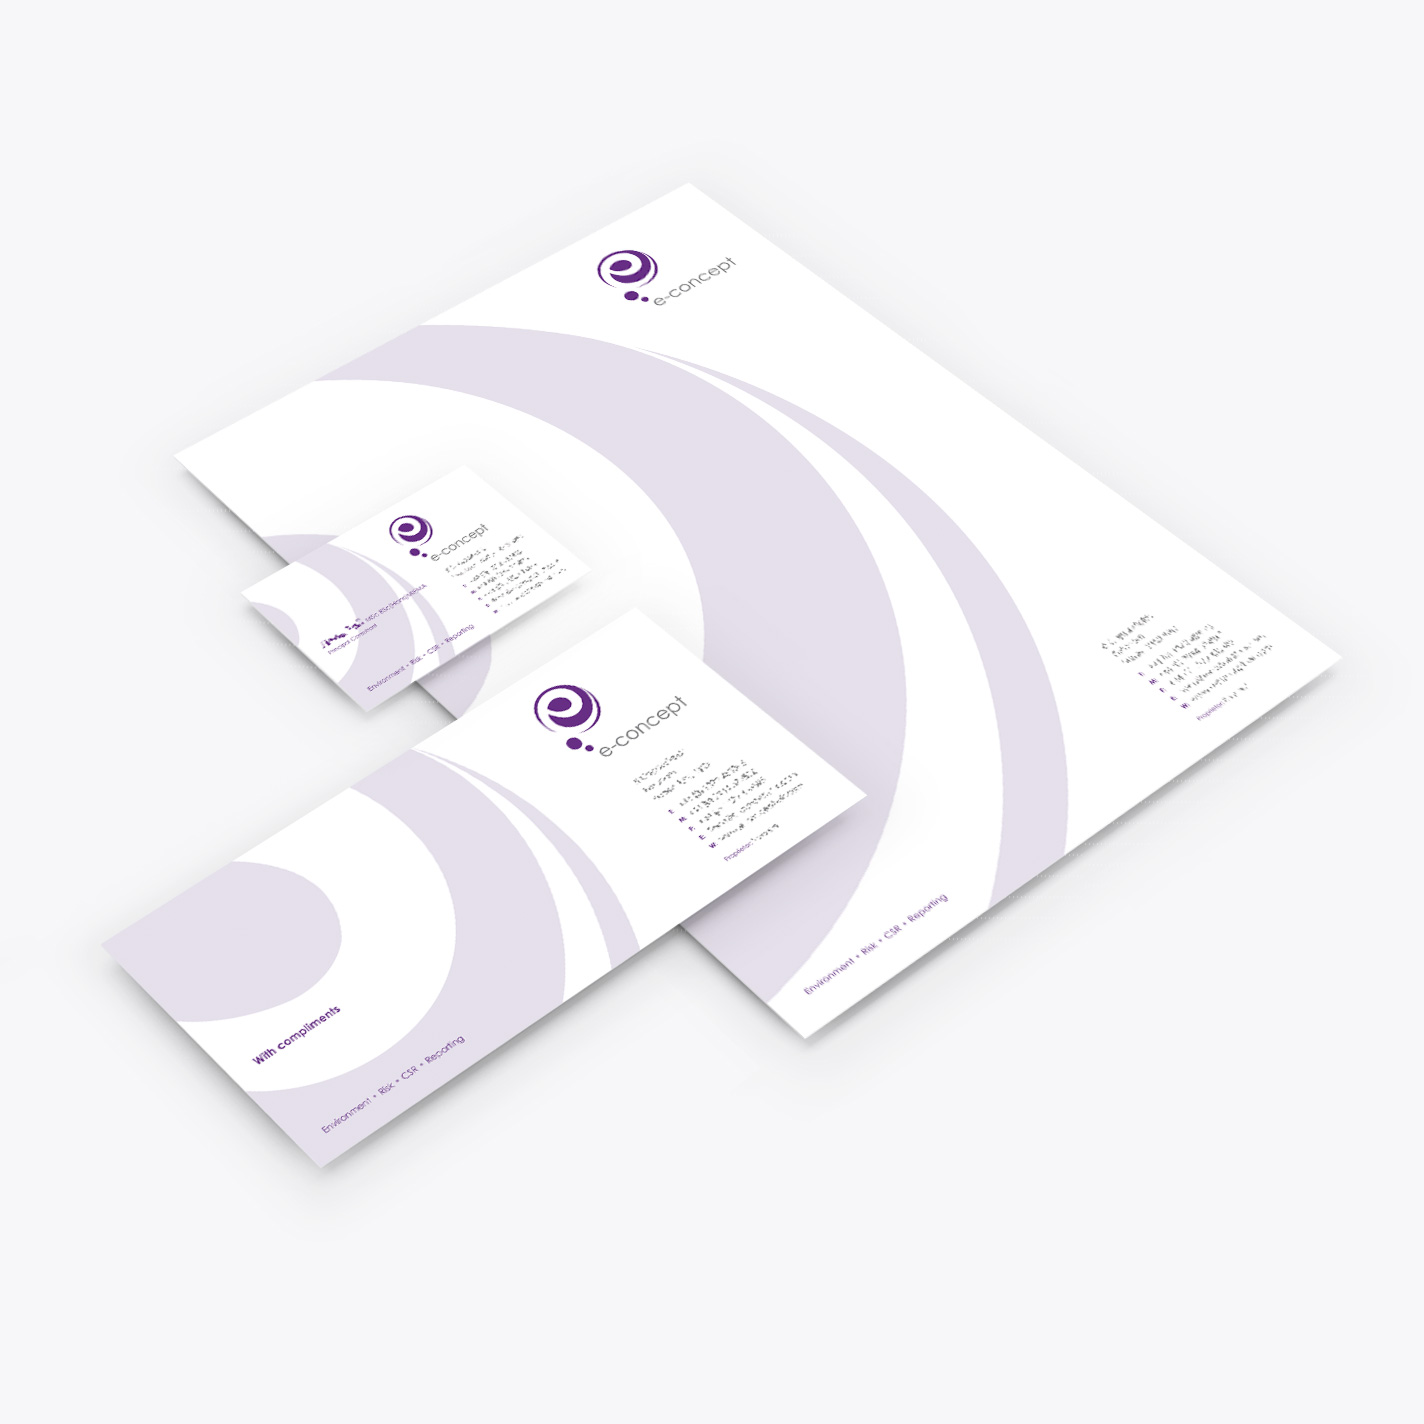 e-concept stationery design